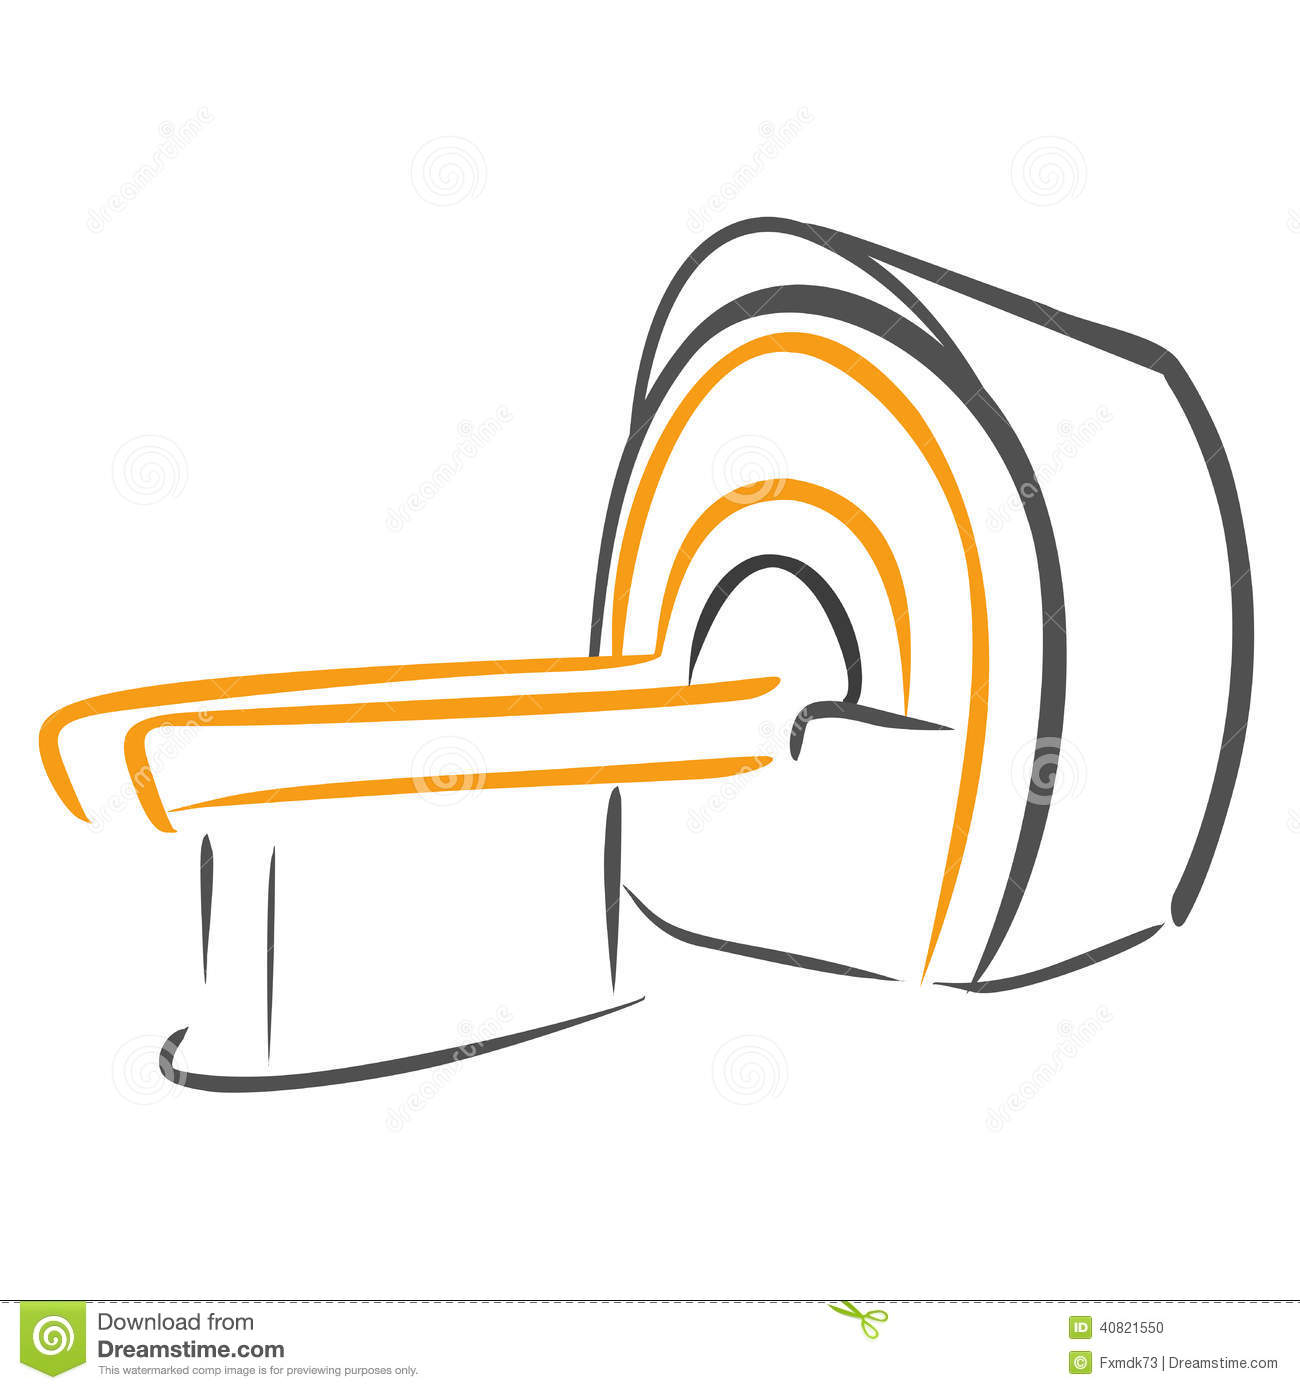 CT Scanner Sketch Stock Vector.